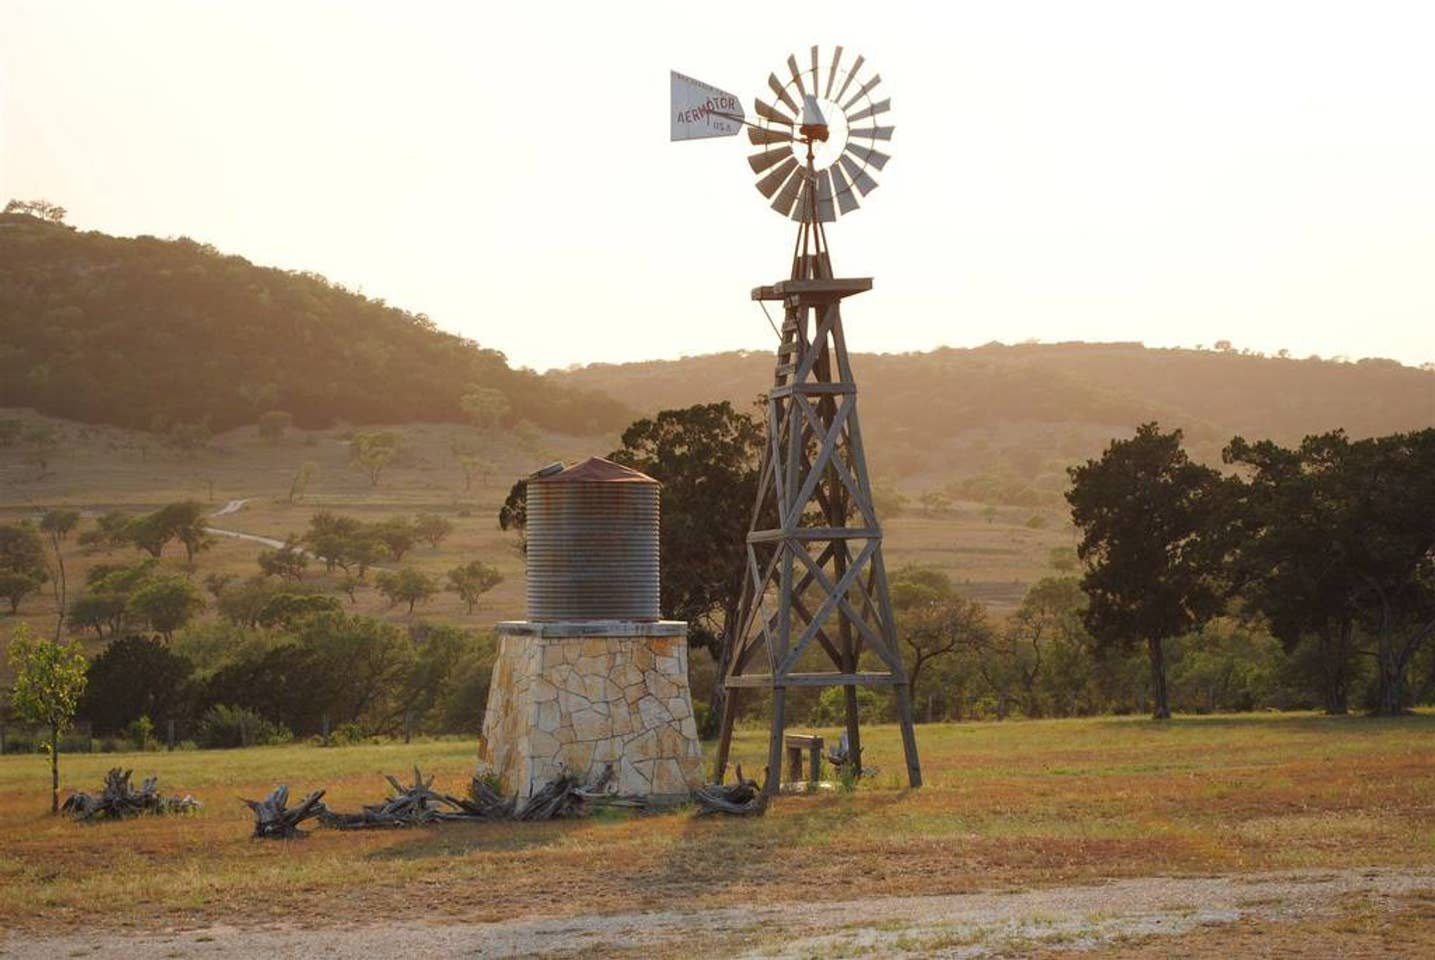 The Last Outpost offers not only views of the gorgeous Hill Country, but gives visitors a sense of the region's history, as well.